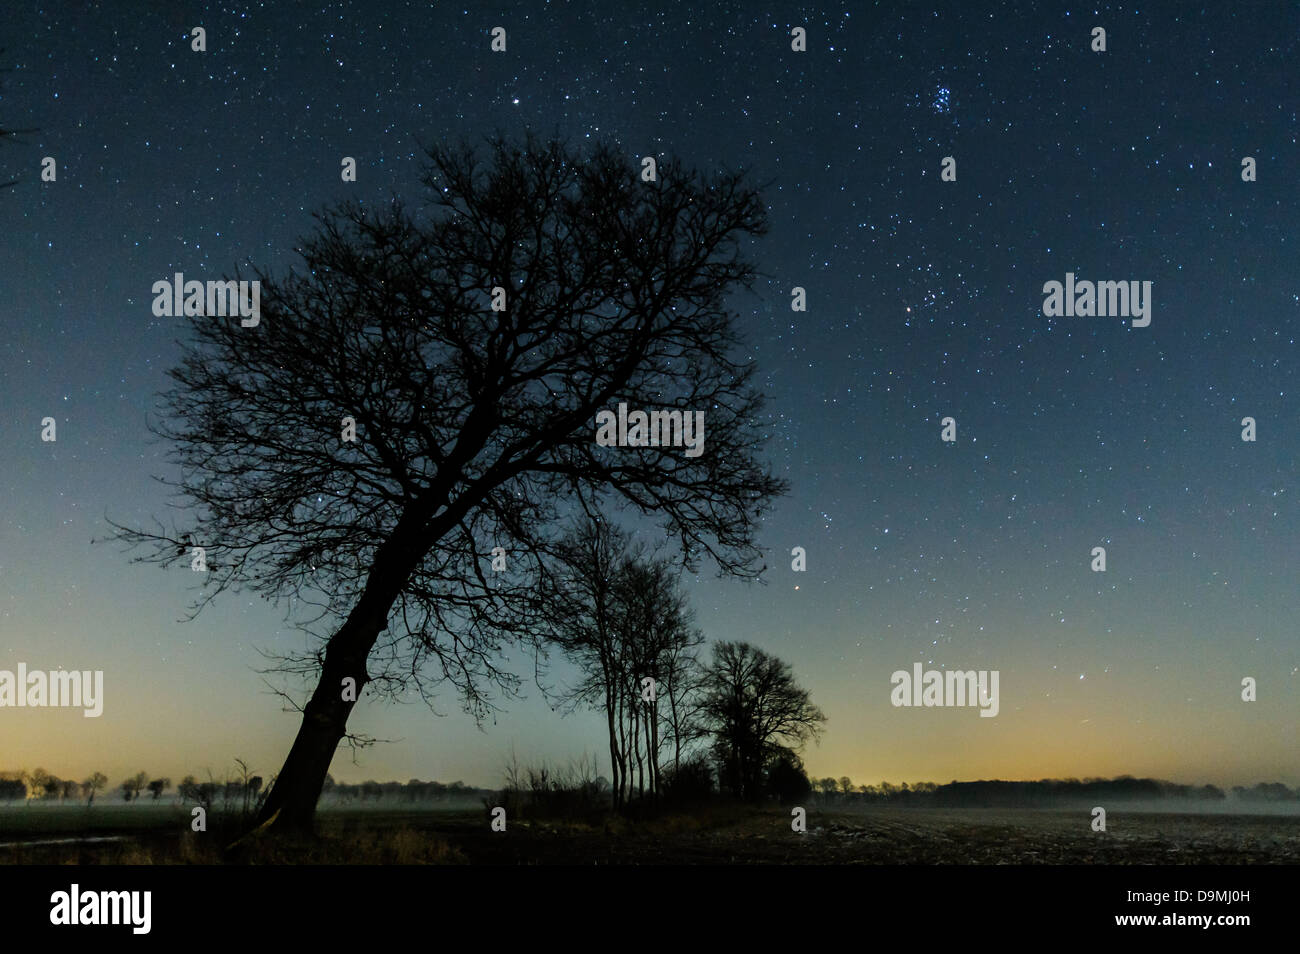 Star sky, stairy, stars, night, tree, scenic Stock Photo